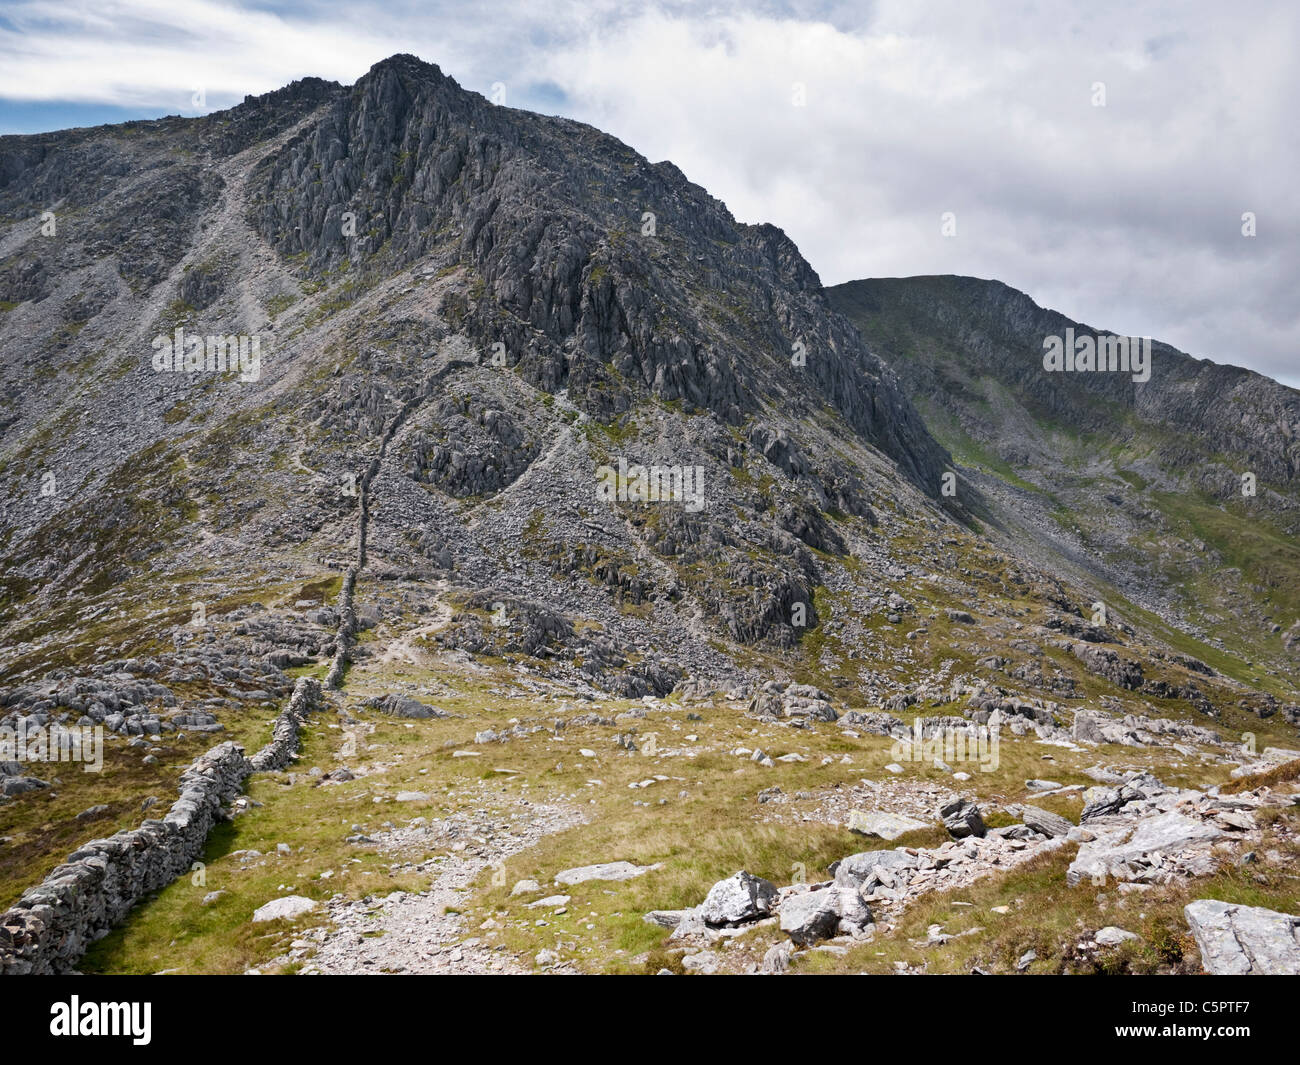 Bristly Ridge - a grade 1 scramble leading from Bwlch Tryfan onto Glyder Fach in Y Glyderau mountains of Snowdonia, - Stock Image